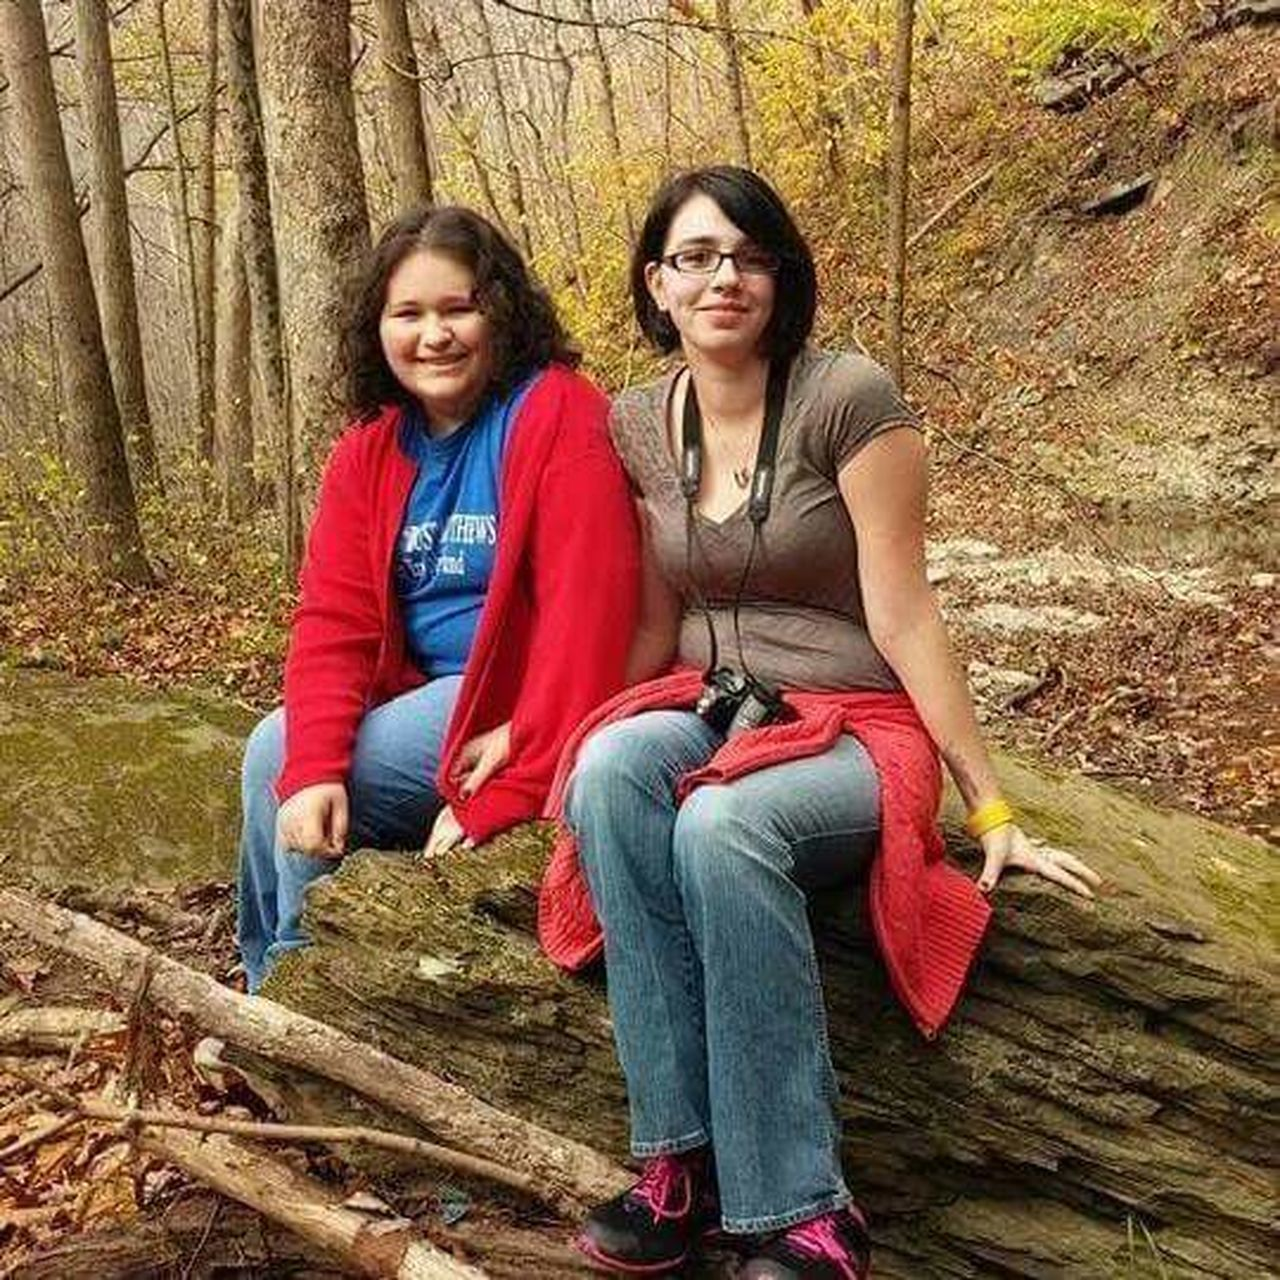 two people, sitting, smiling, mature adult, togetherness, forest, mature women, outdoors, happiness, day, women, real people, portrait, full length, tree, adult, looking at camera, leisure activity, casual clothing, tree trunk, autumn, cheerful, people, nature, only women, adults only, friendship, young adult